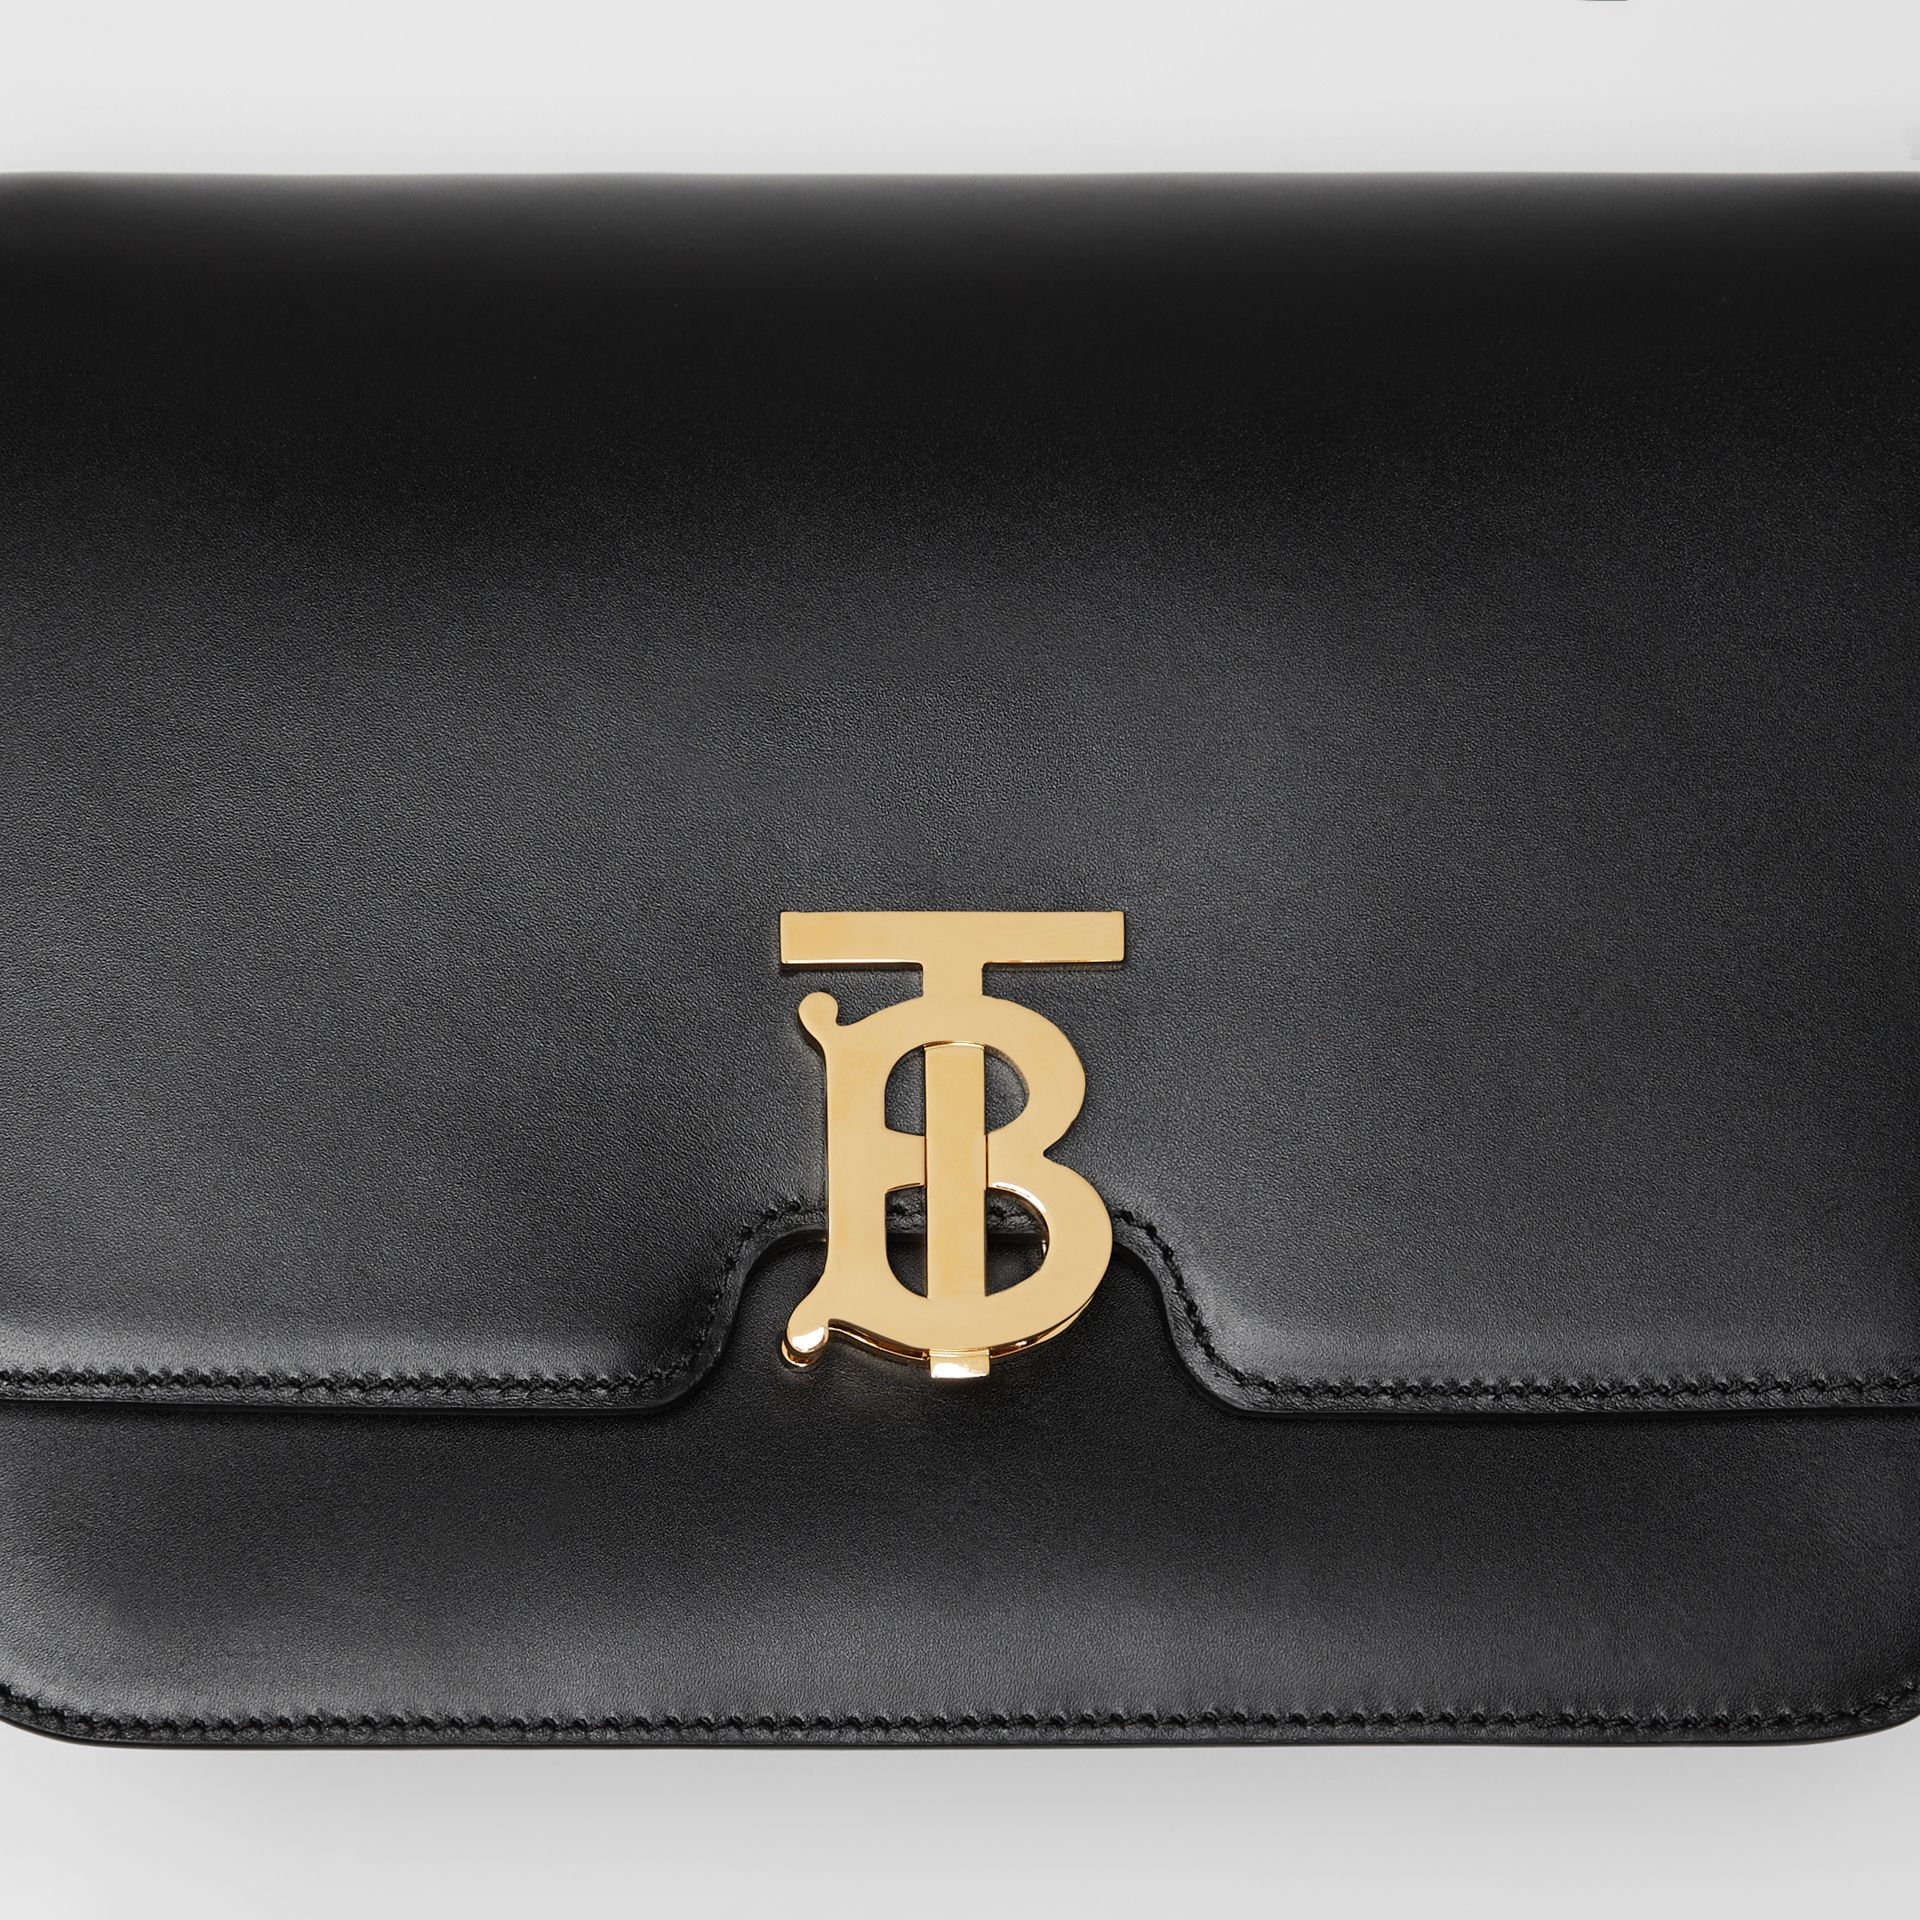 Medium Leather TB Bag in Black - Women | Burberry Australia - gallery image 1